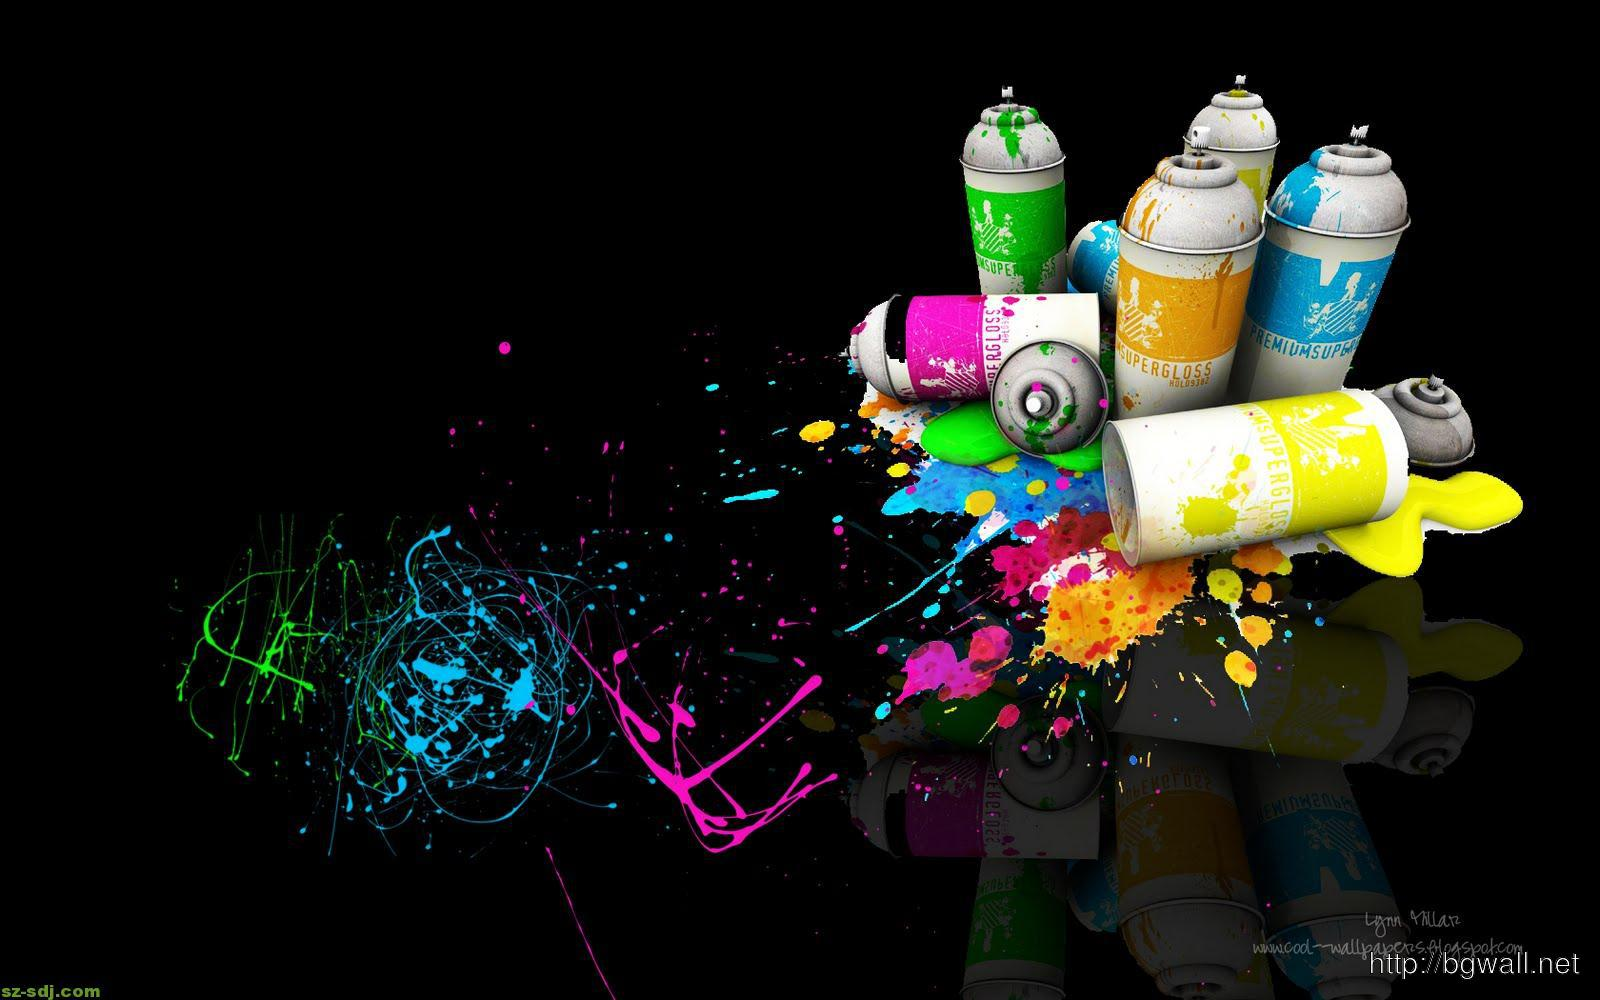 colorfull-spary-tin-wallpaper-background